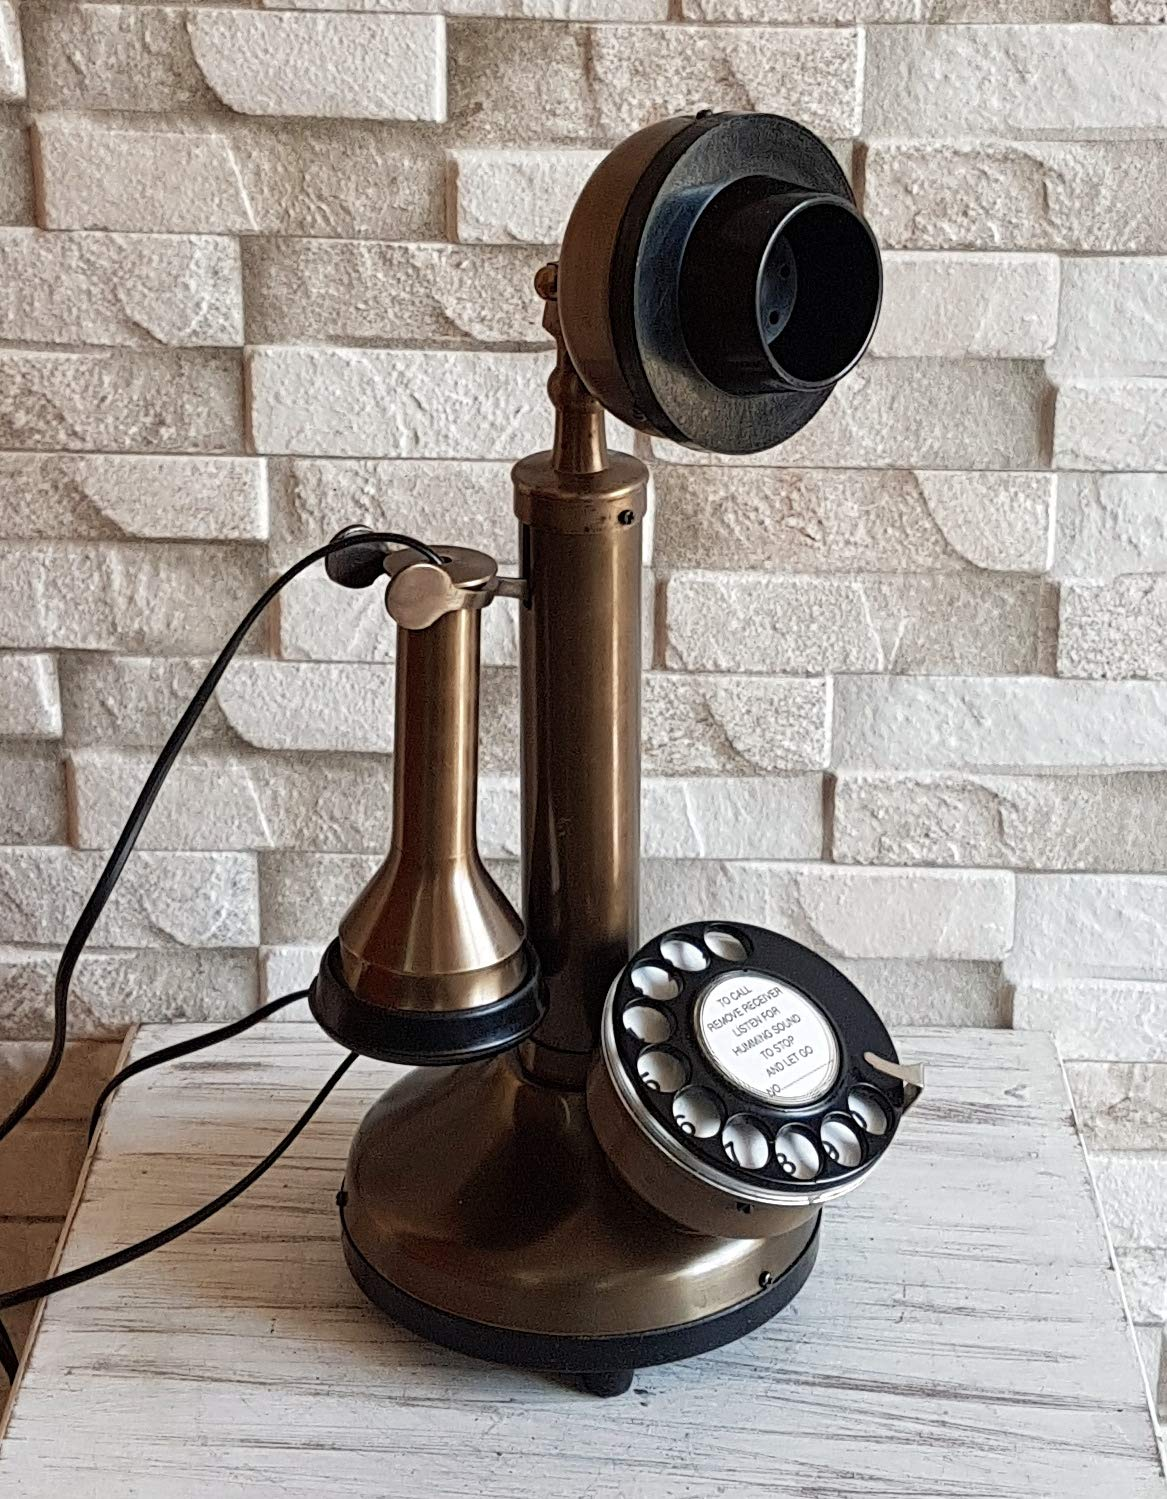 Candlestick Working Telephone Decor Home Vintage Style Decorative Antique Brass. by Decor n style store